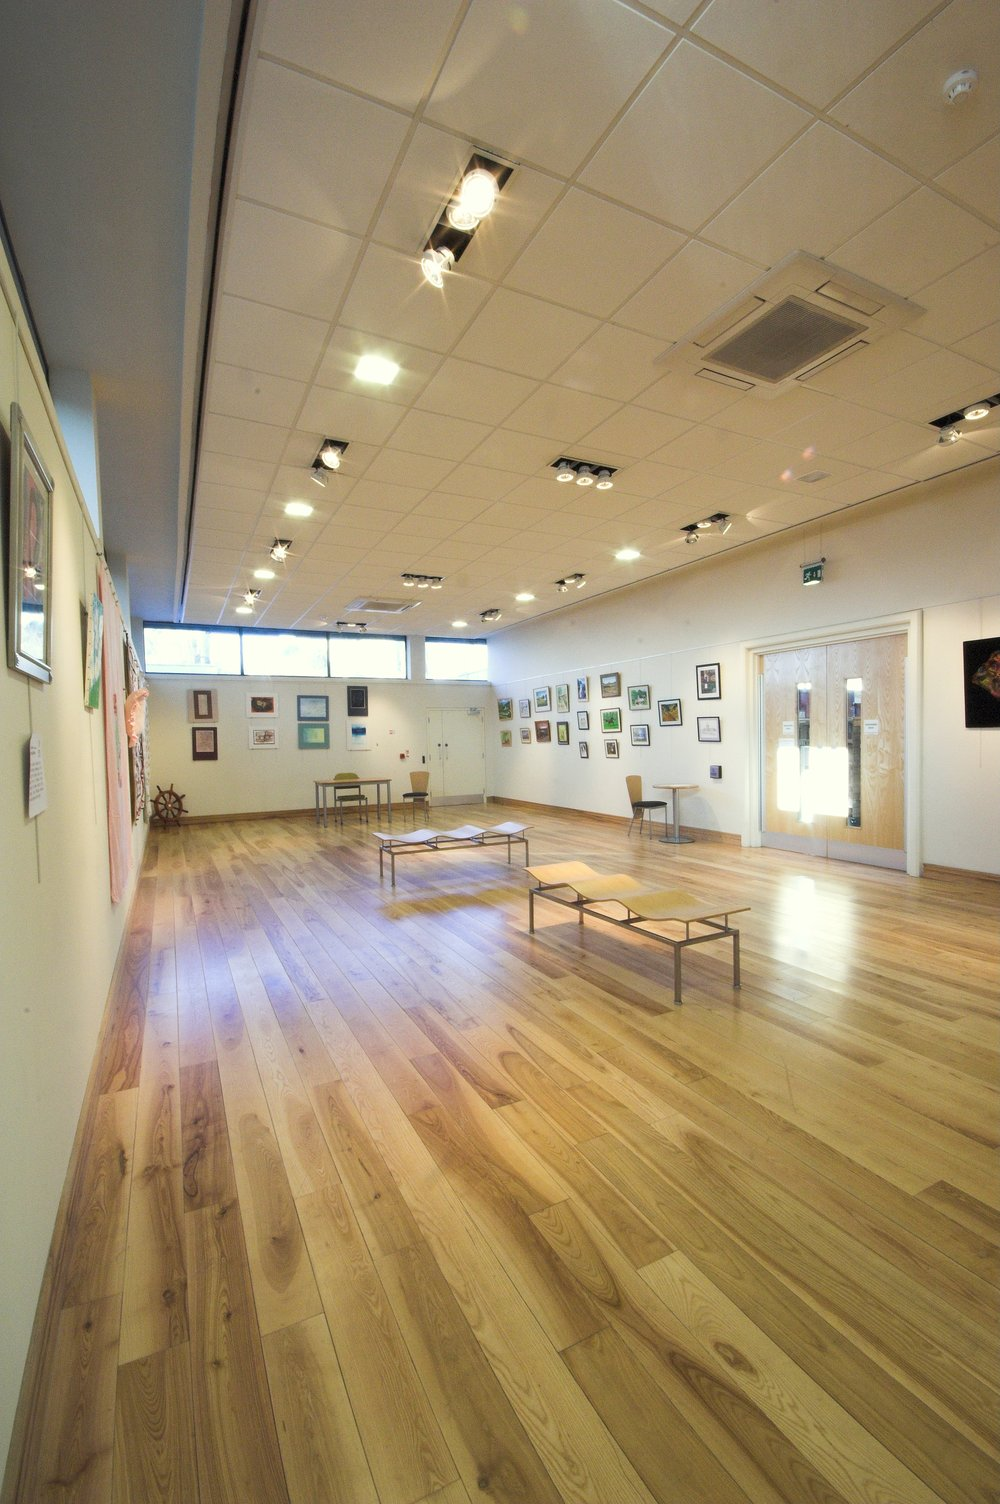 Downpatrick Gallery Interior 02.jpg